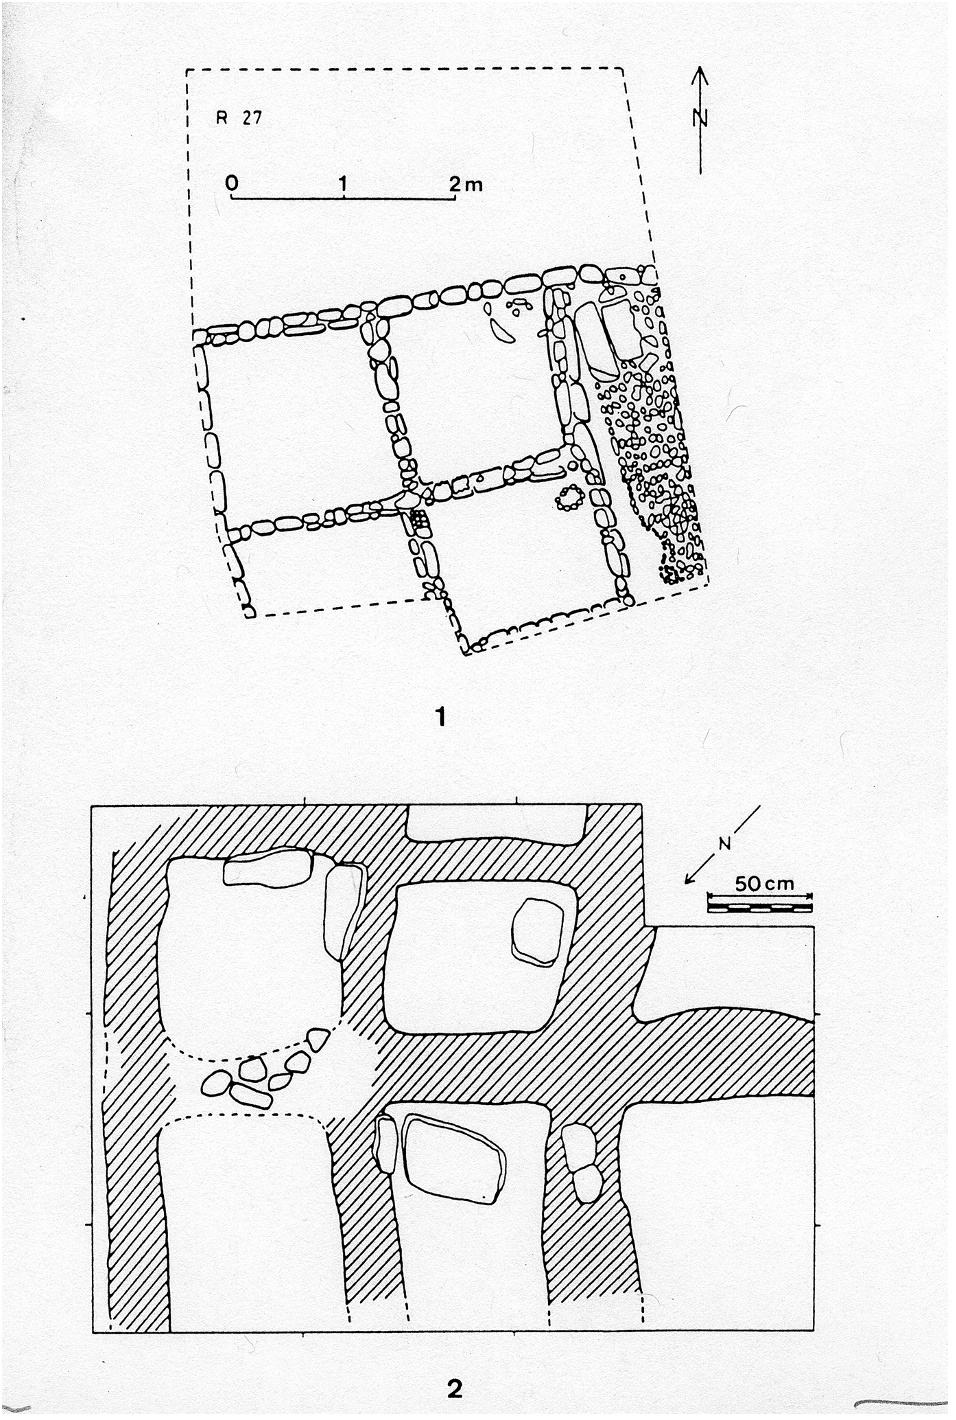 Map drawings of storage areas or silos